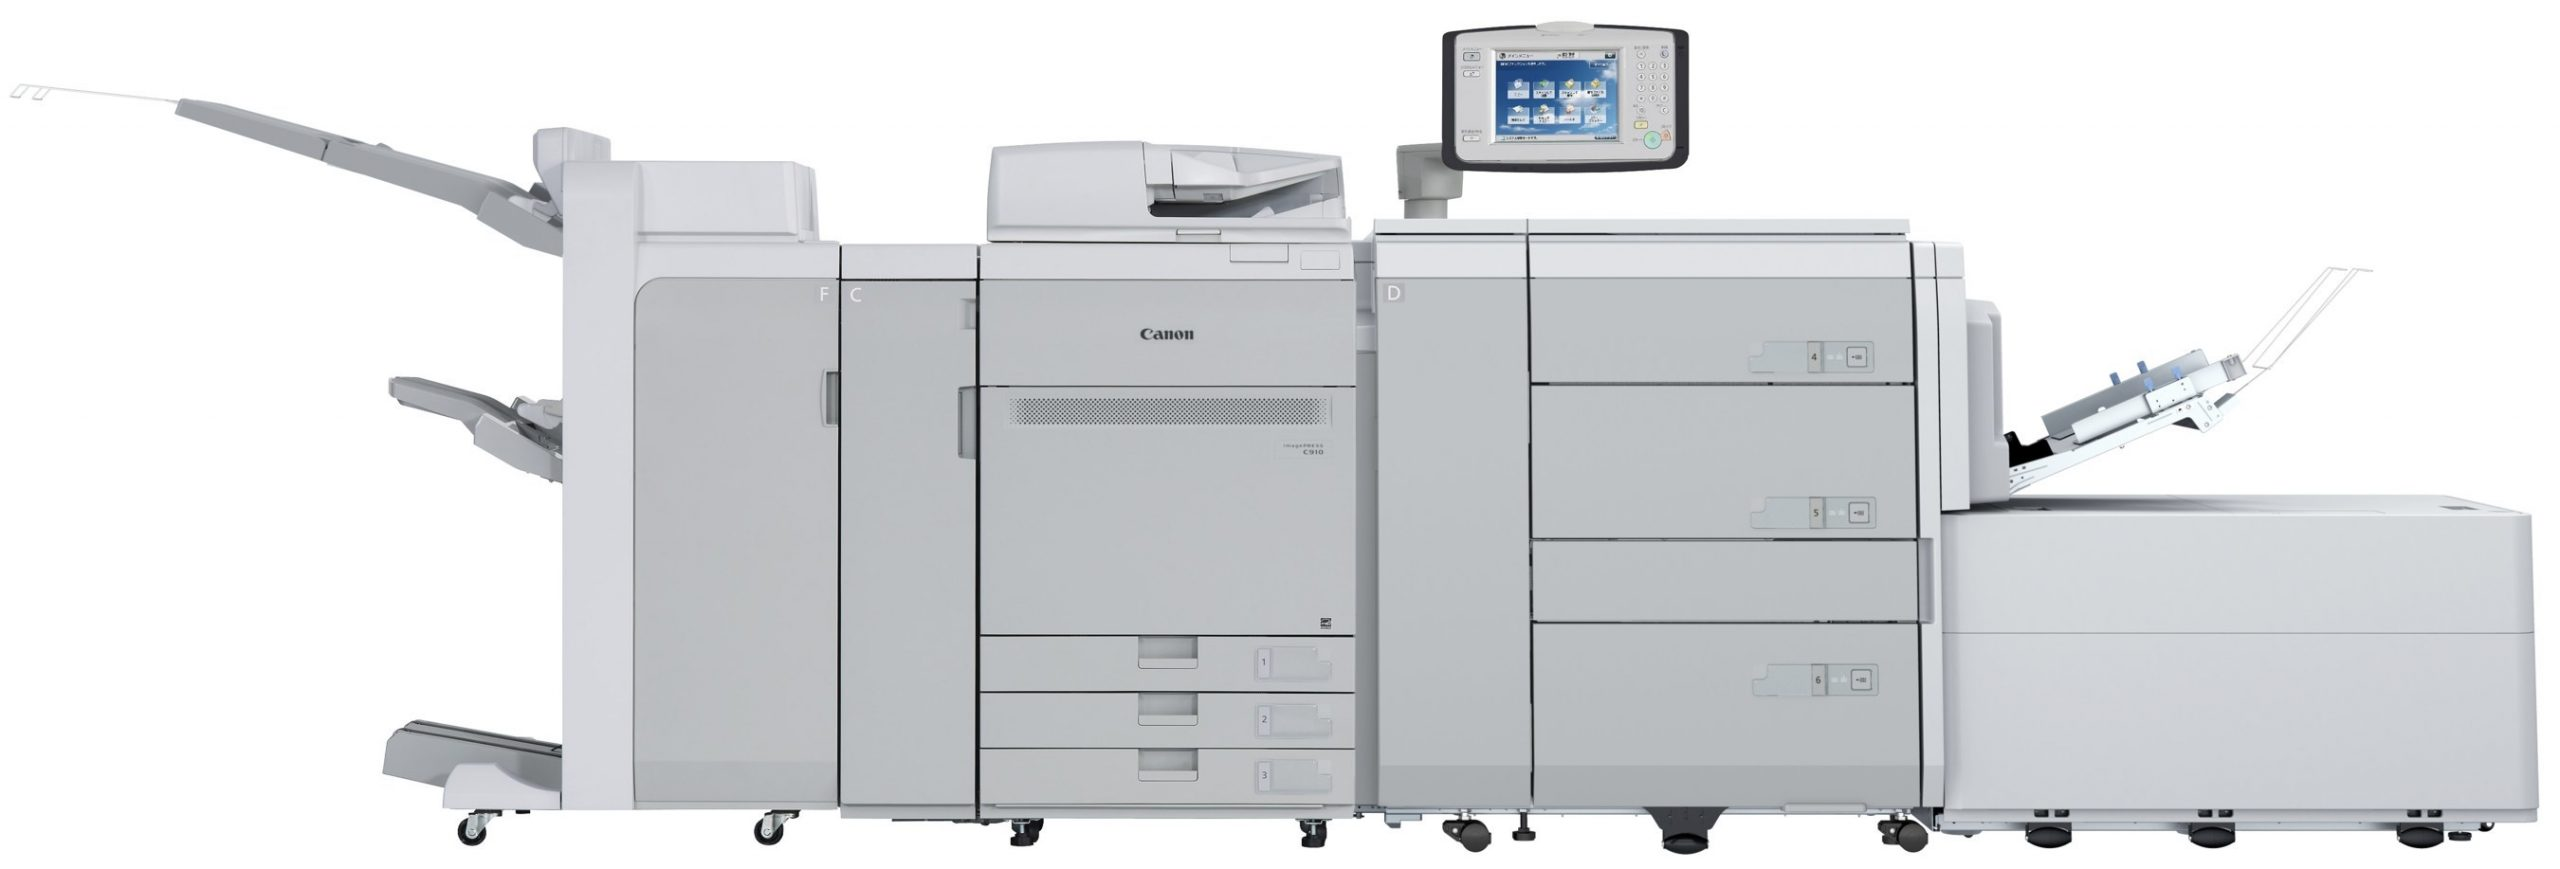 Canon U.S.A., Inc., Announces New Feeding Accessory and Fiery-powered Controllers for the imagePRESS C910 Series